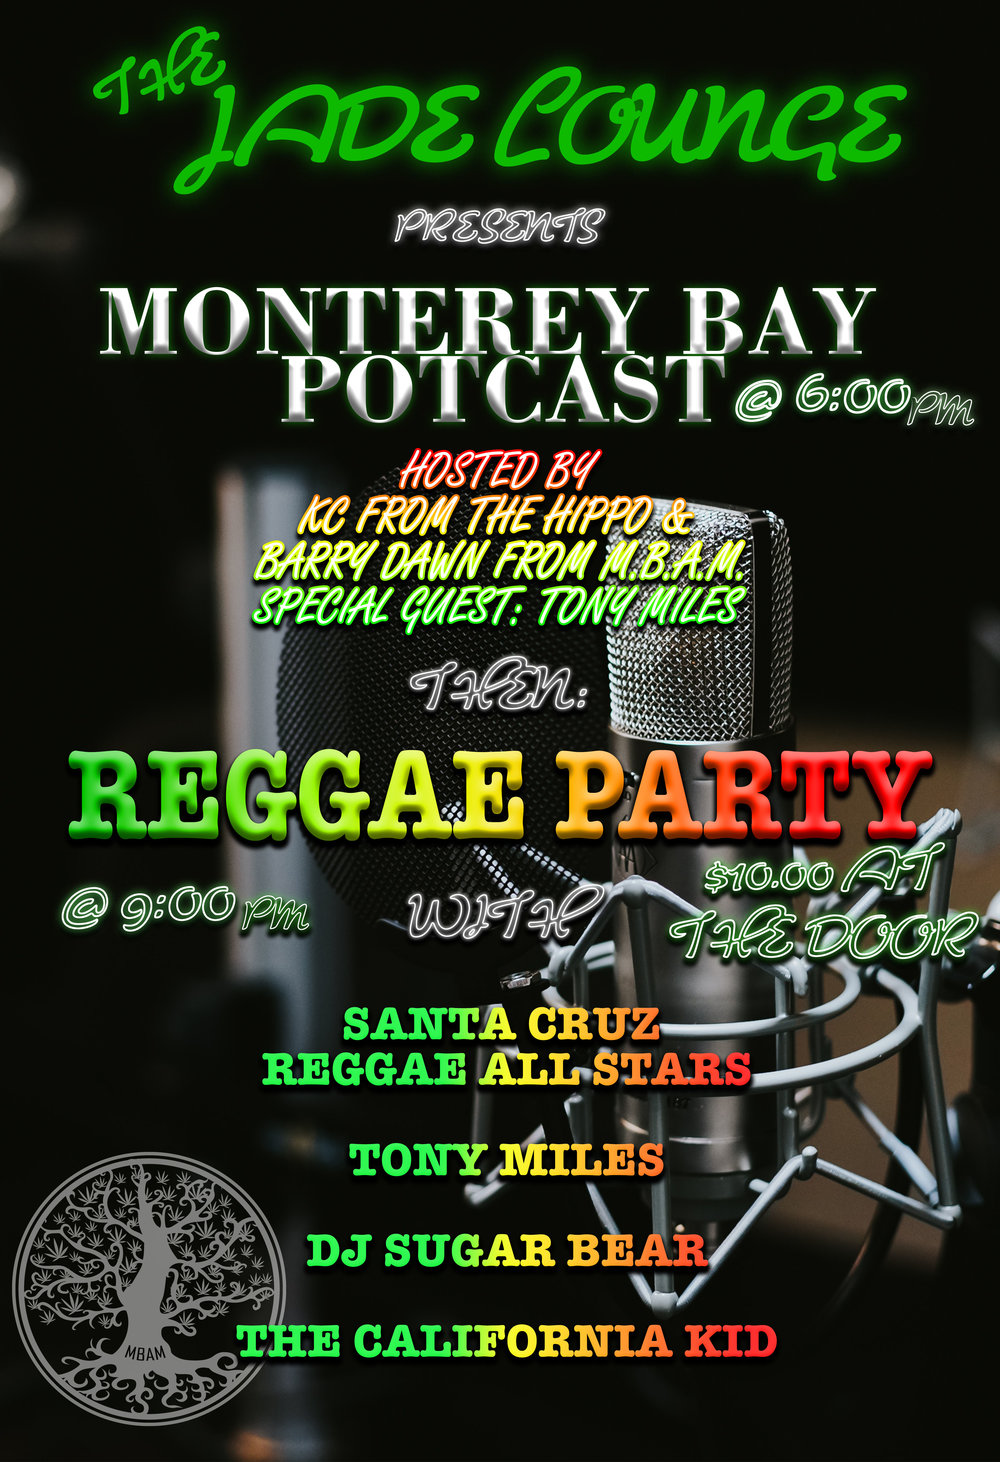 Monterey Bay Potcast and Reggae Party - Potcast at 6:00pm on the patioReggae party at 9:00pm!